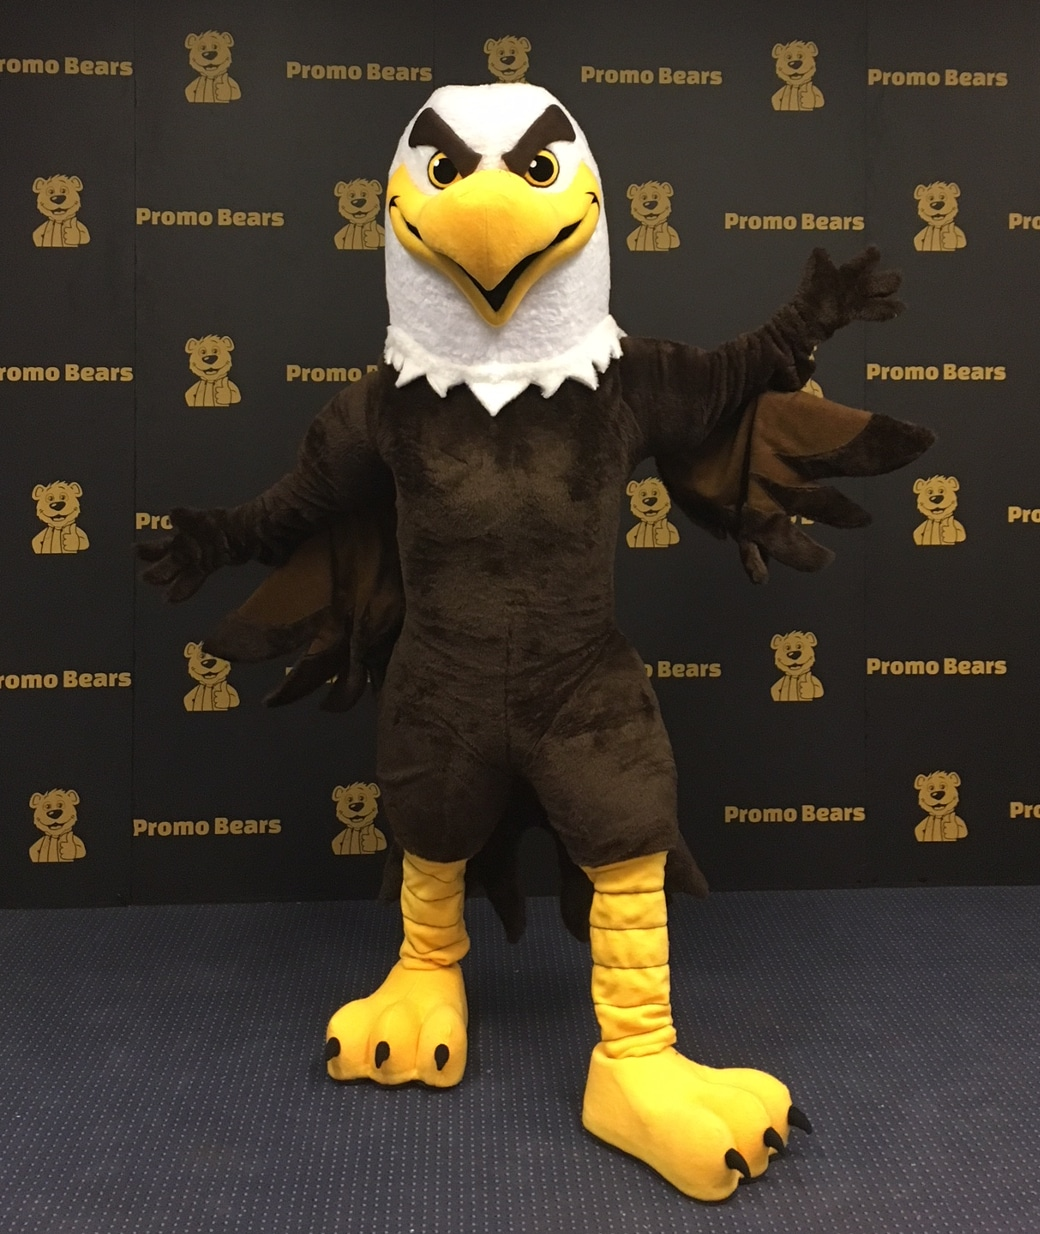 Eagle Mascot Costume in Stock of Professional Quality